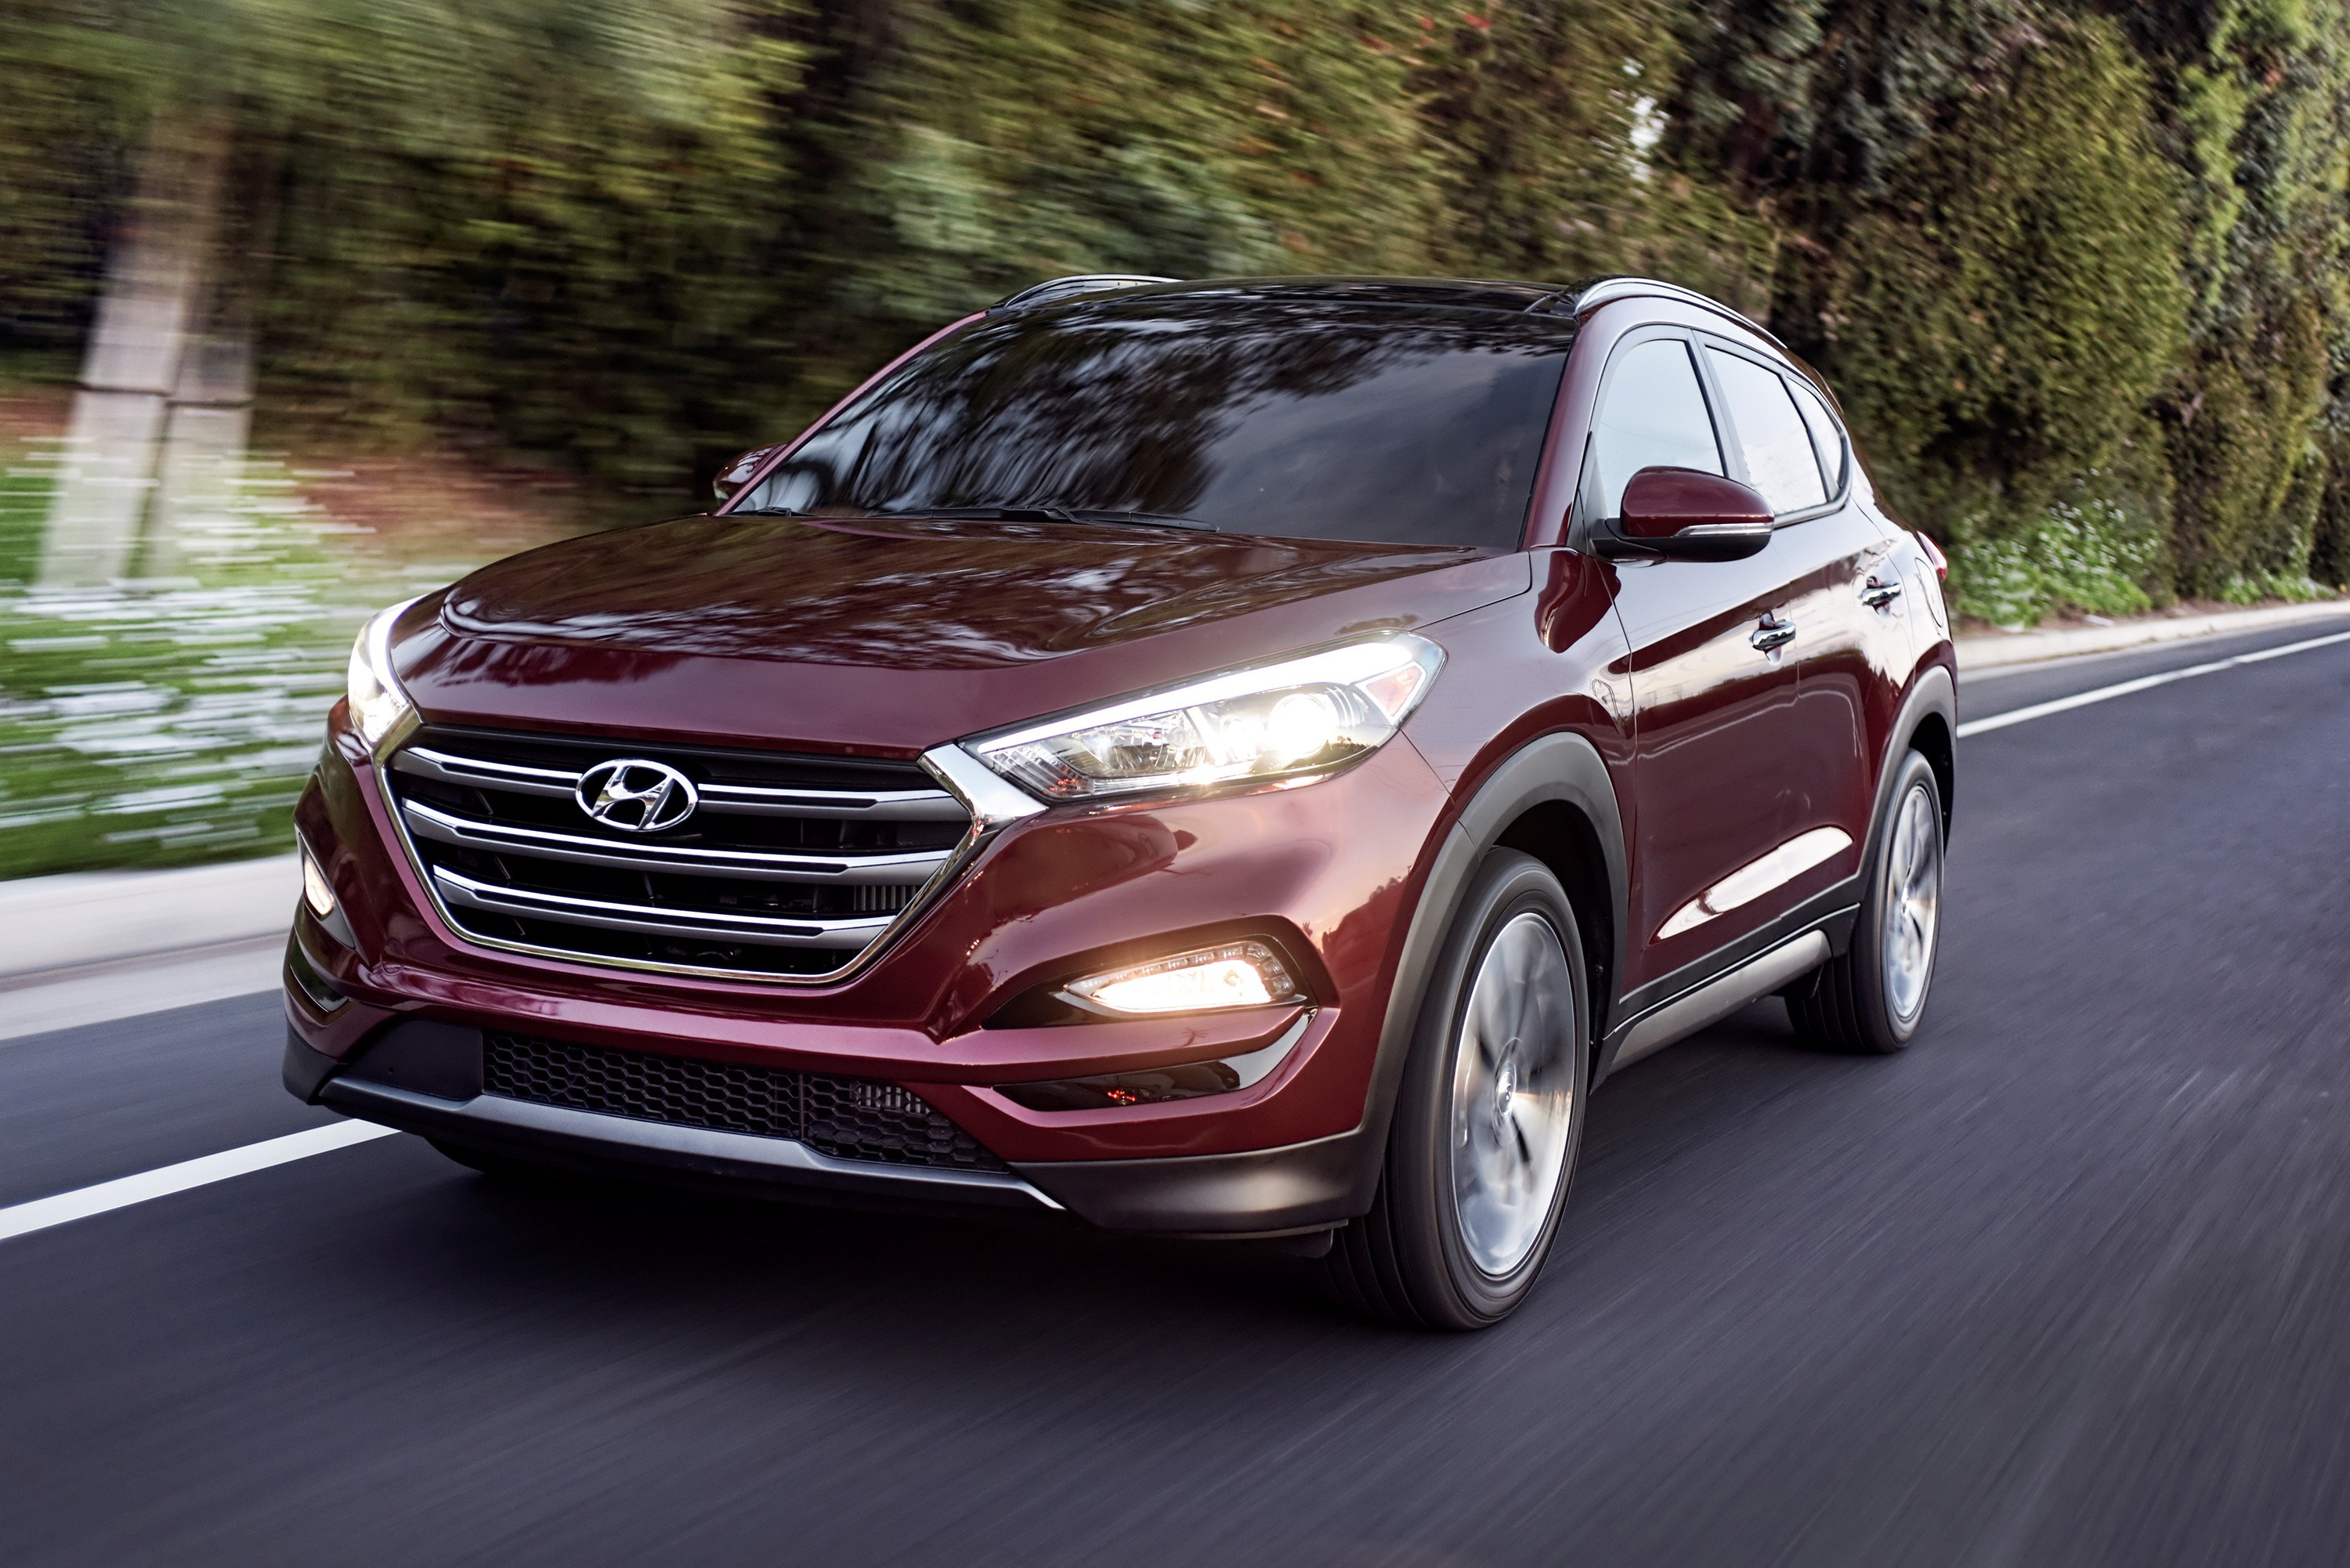 2017 hyundai tucson review carfax. Black Bedroom Furniture Sets. Home Design Ideas